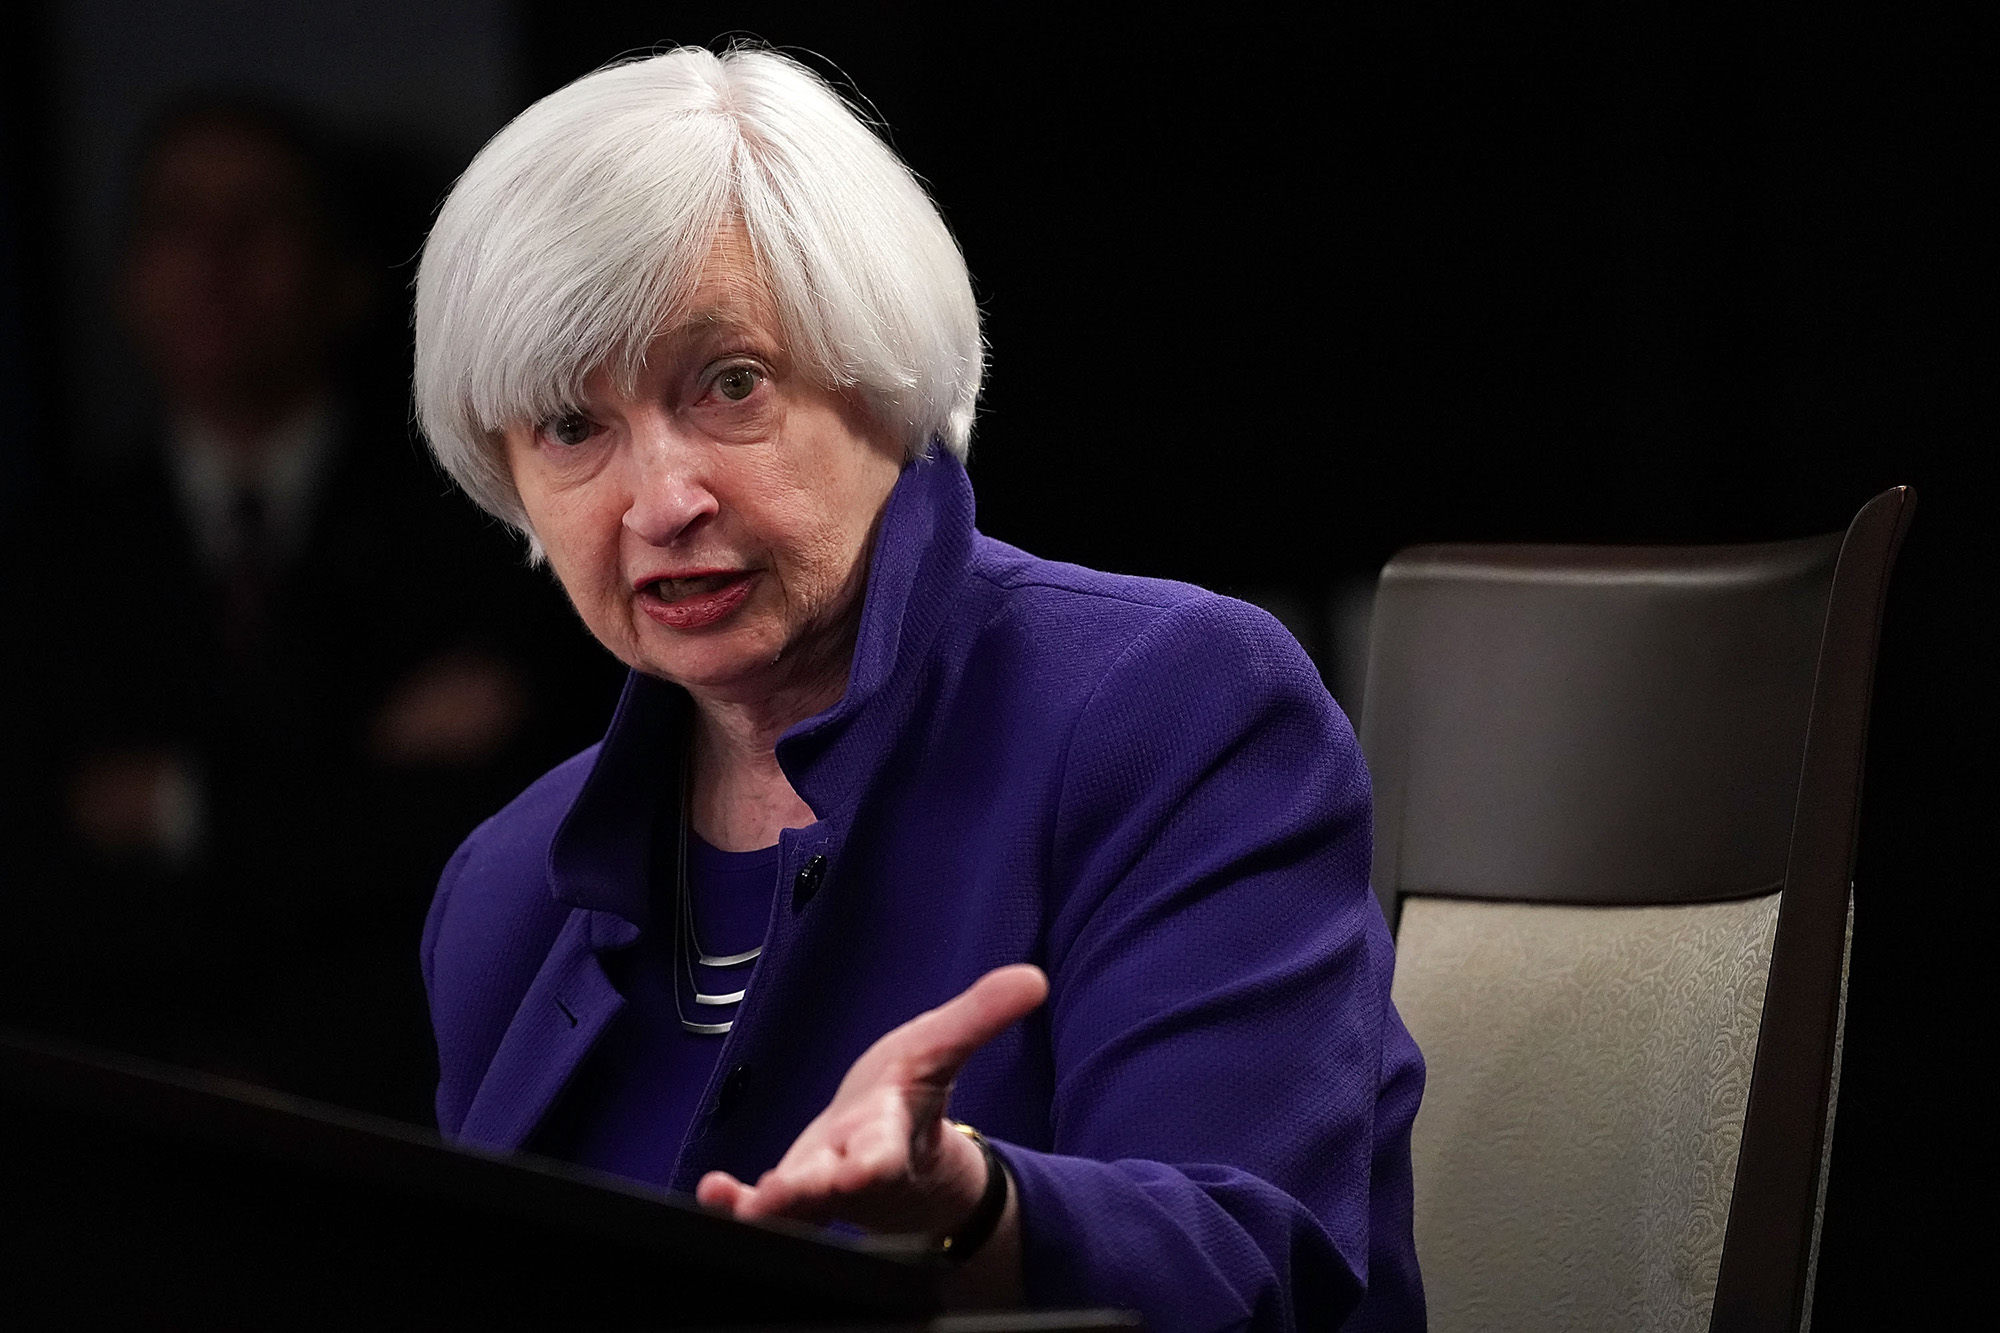 Federal Reserve Chair Janet Yellen speaks during her last news conference in office in Washington DC, on December 13, 2017.